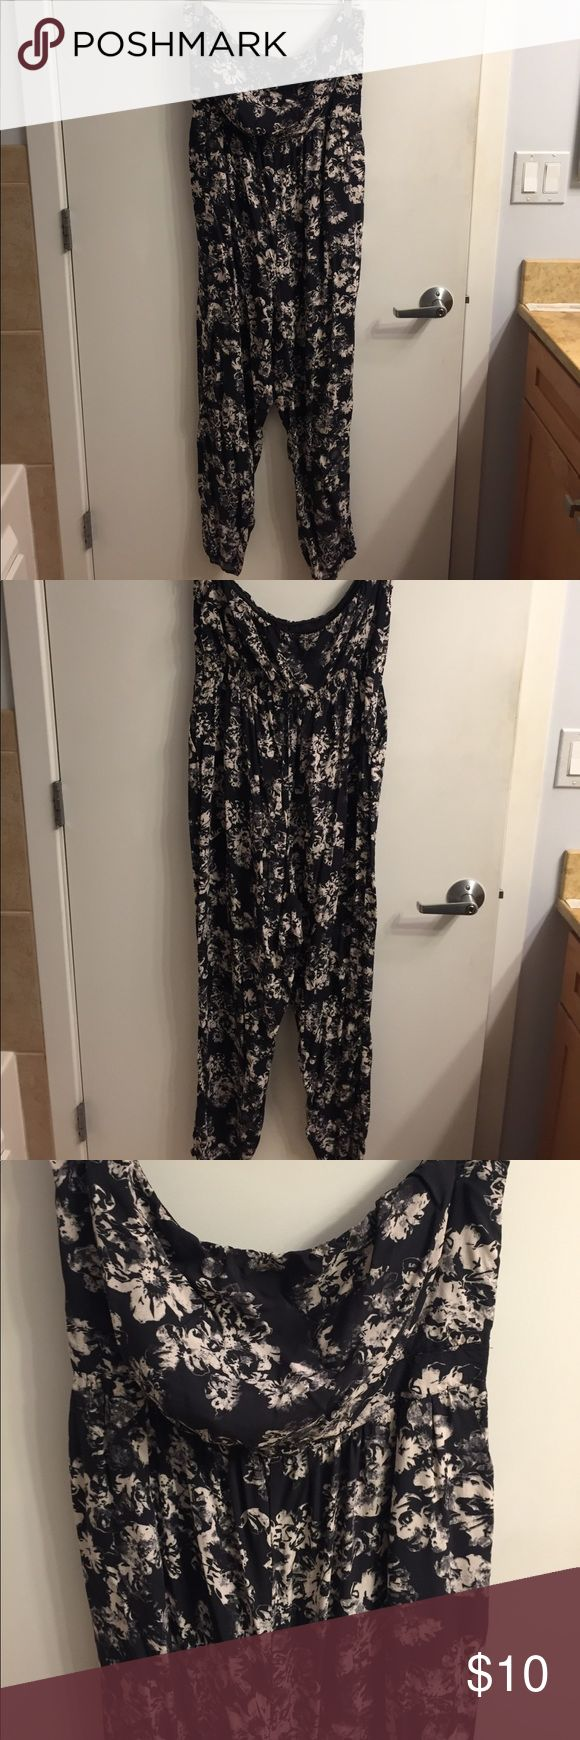 Ambar dressy romper This is an adorable dressy romper. I wore it to a rehearsal dinner for mg friends wedding. Dark grey background with cream floral design. Only worn once. Bandeau top. ambar Other